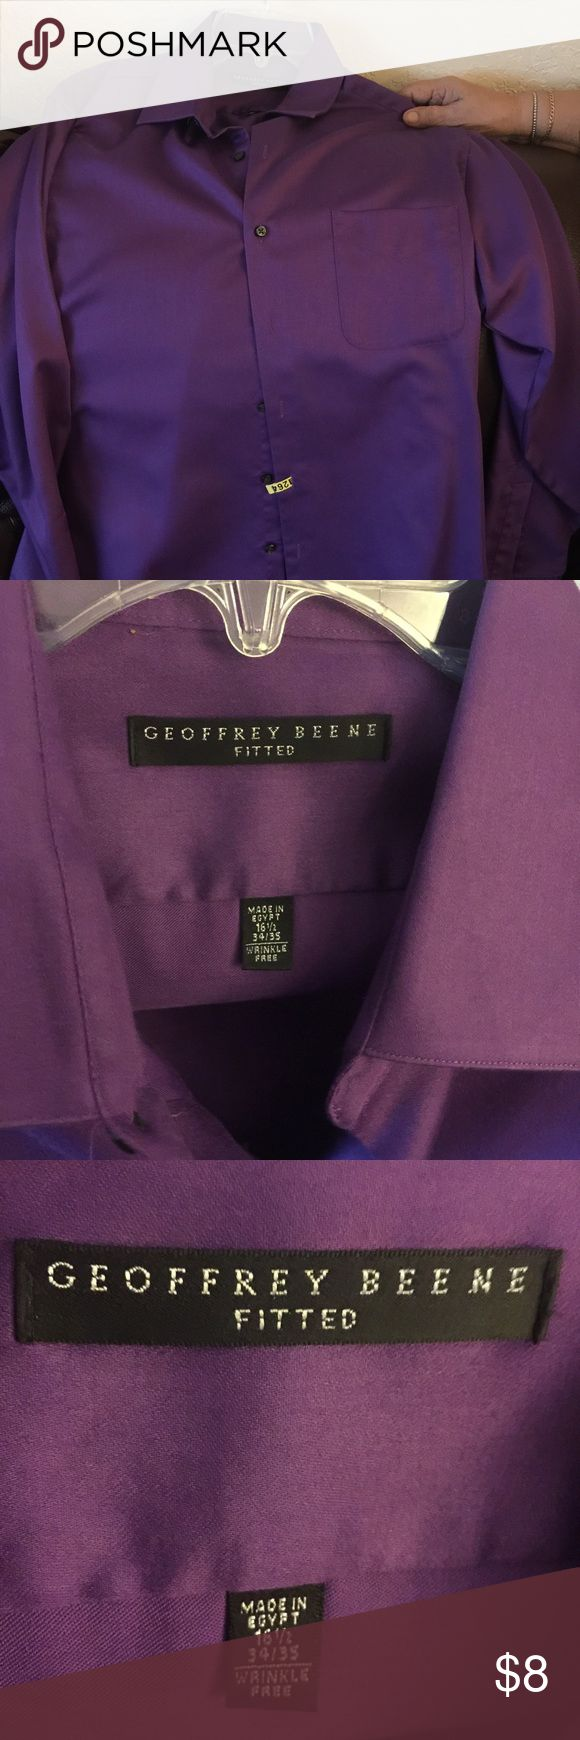 Men's top Used Geoffrey Beene Shirts Dress Shirts